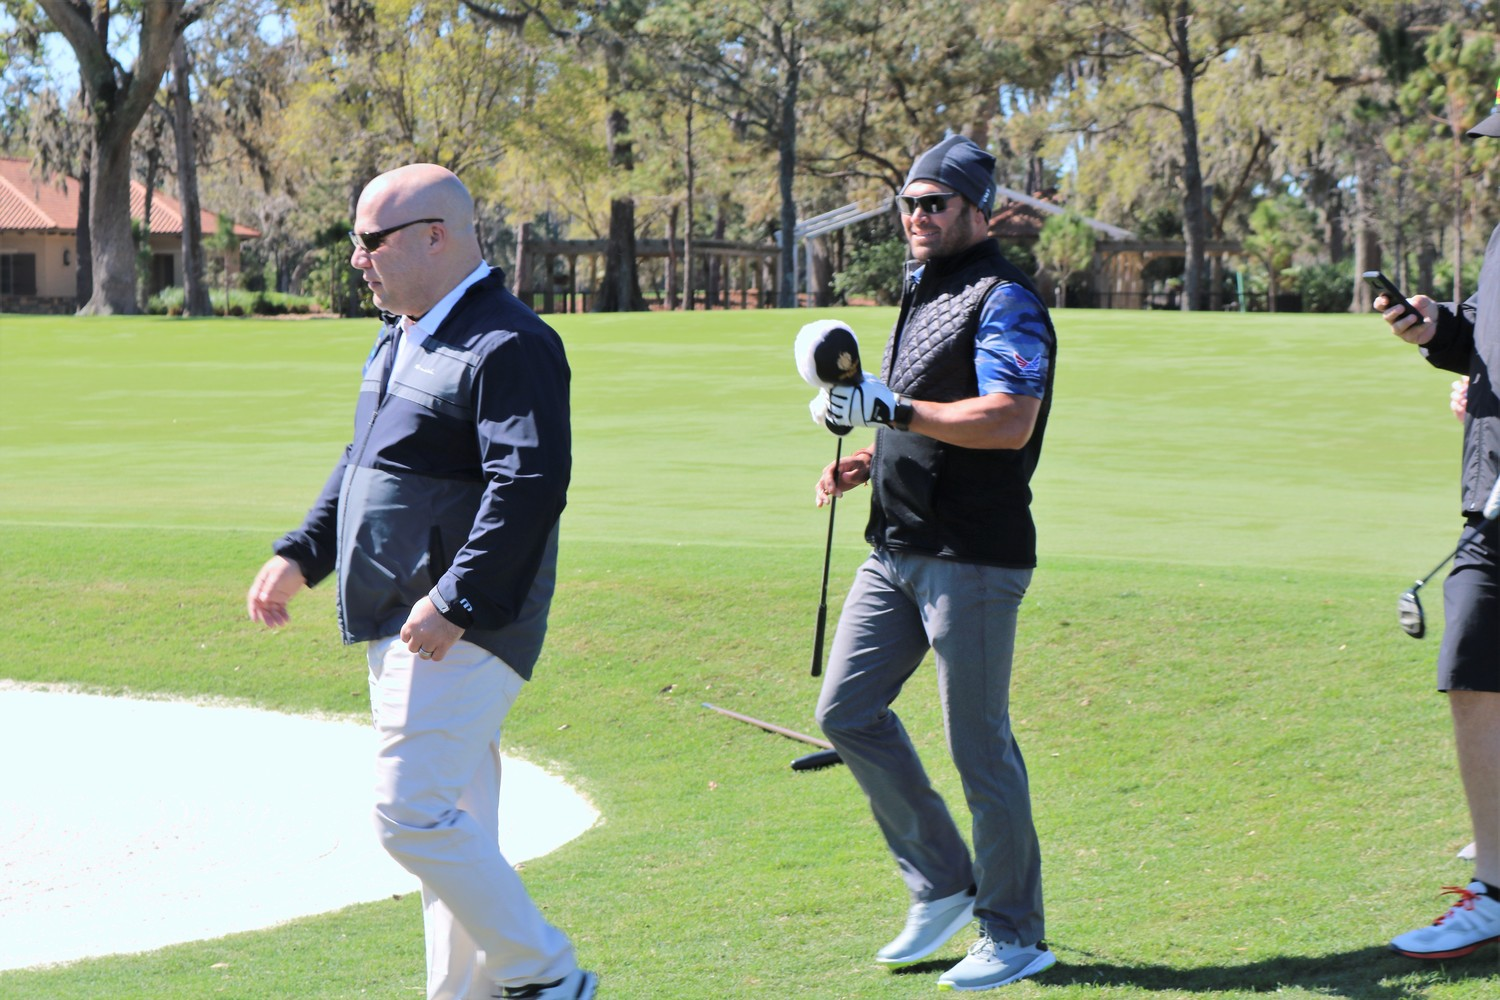 Retired Major League Baseball player Johnny Damon (center) makes his way back to his golf cart.